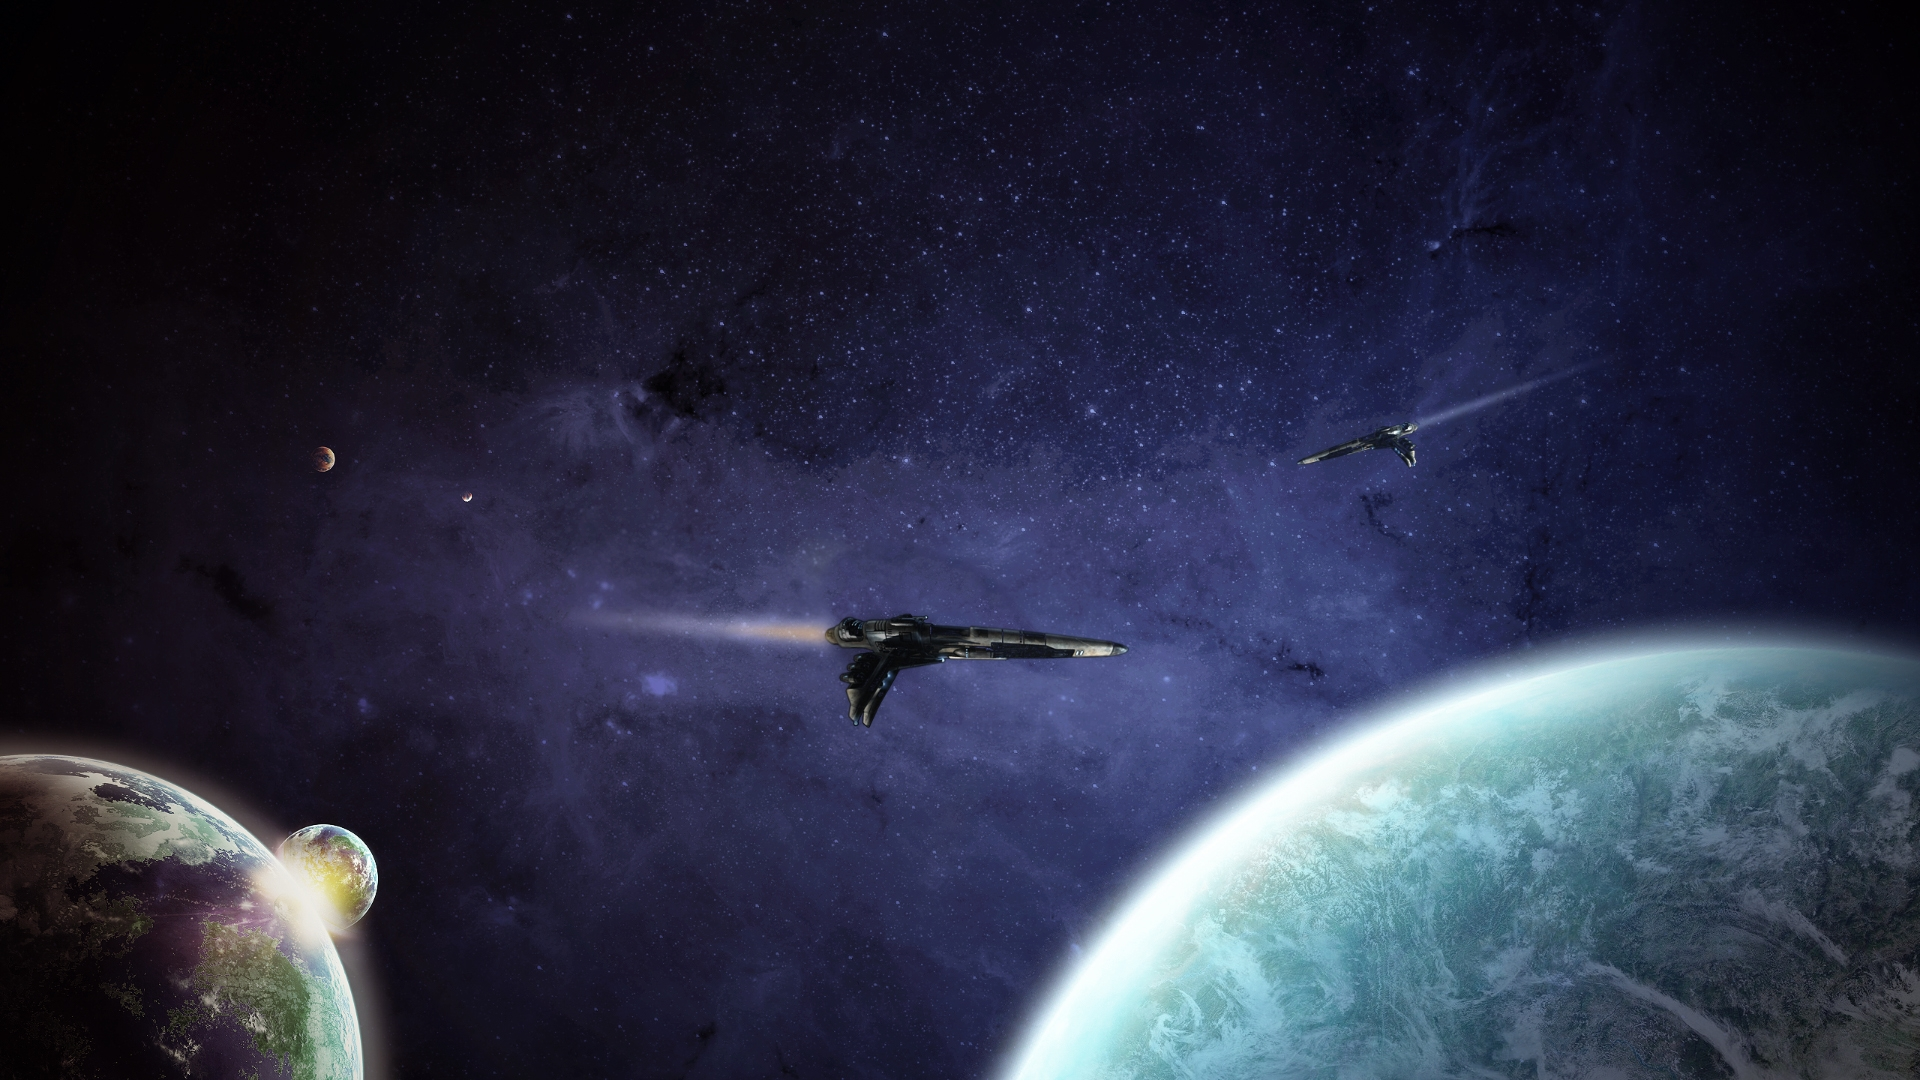 Spacecraft wallpaper